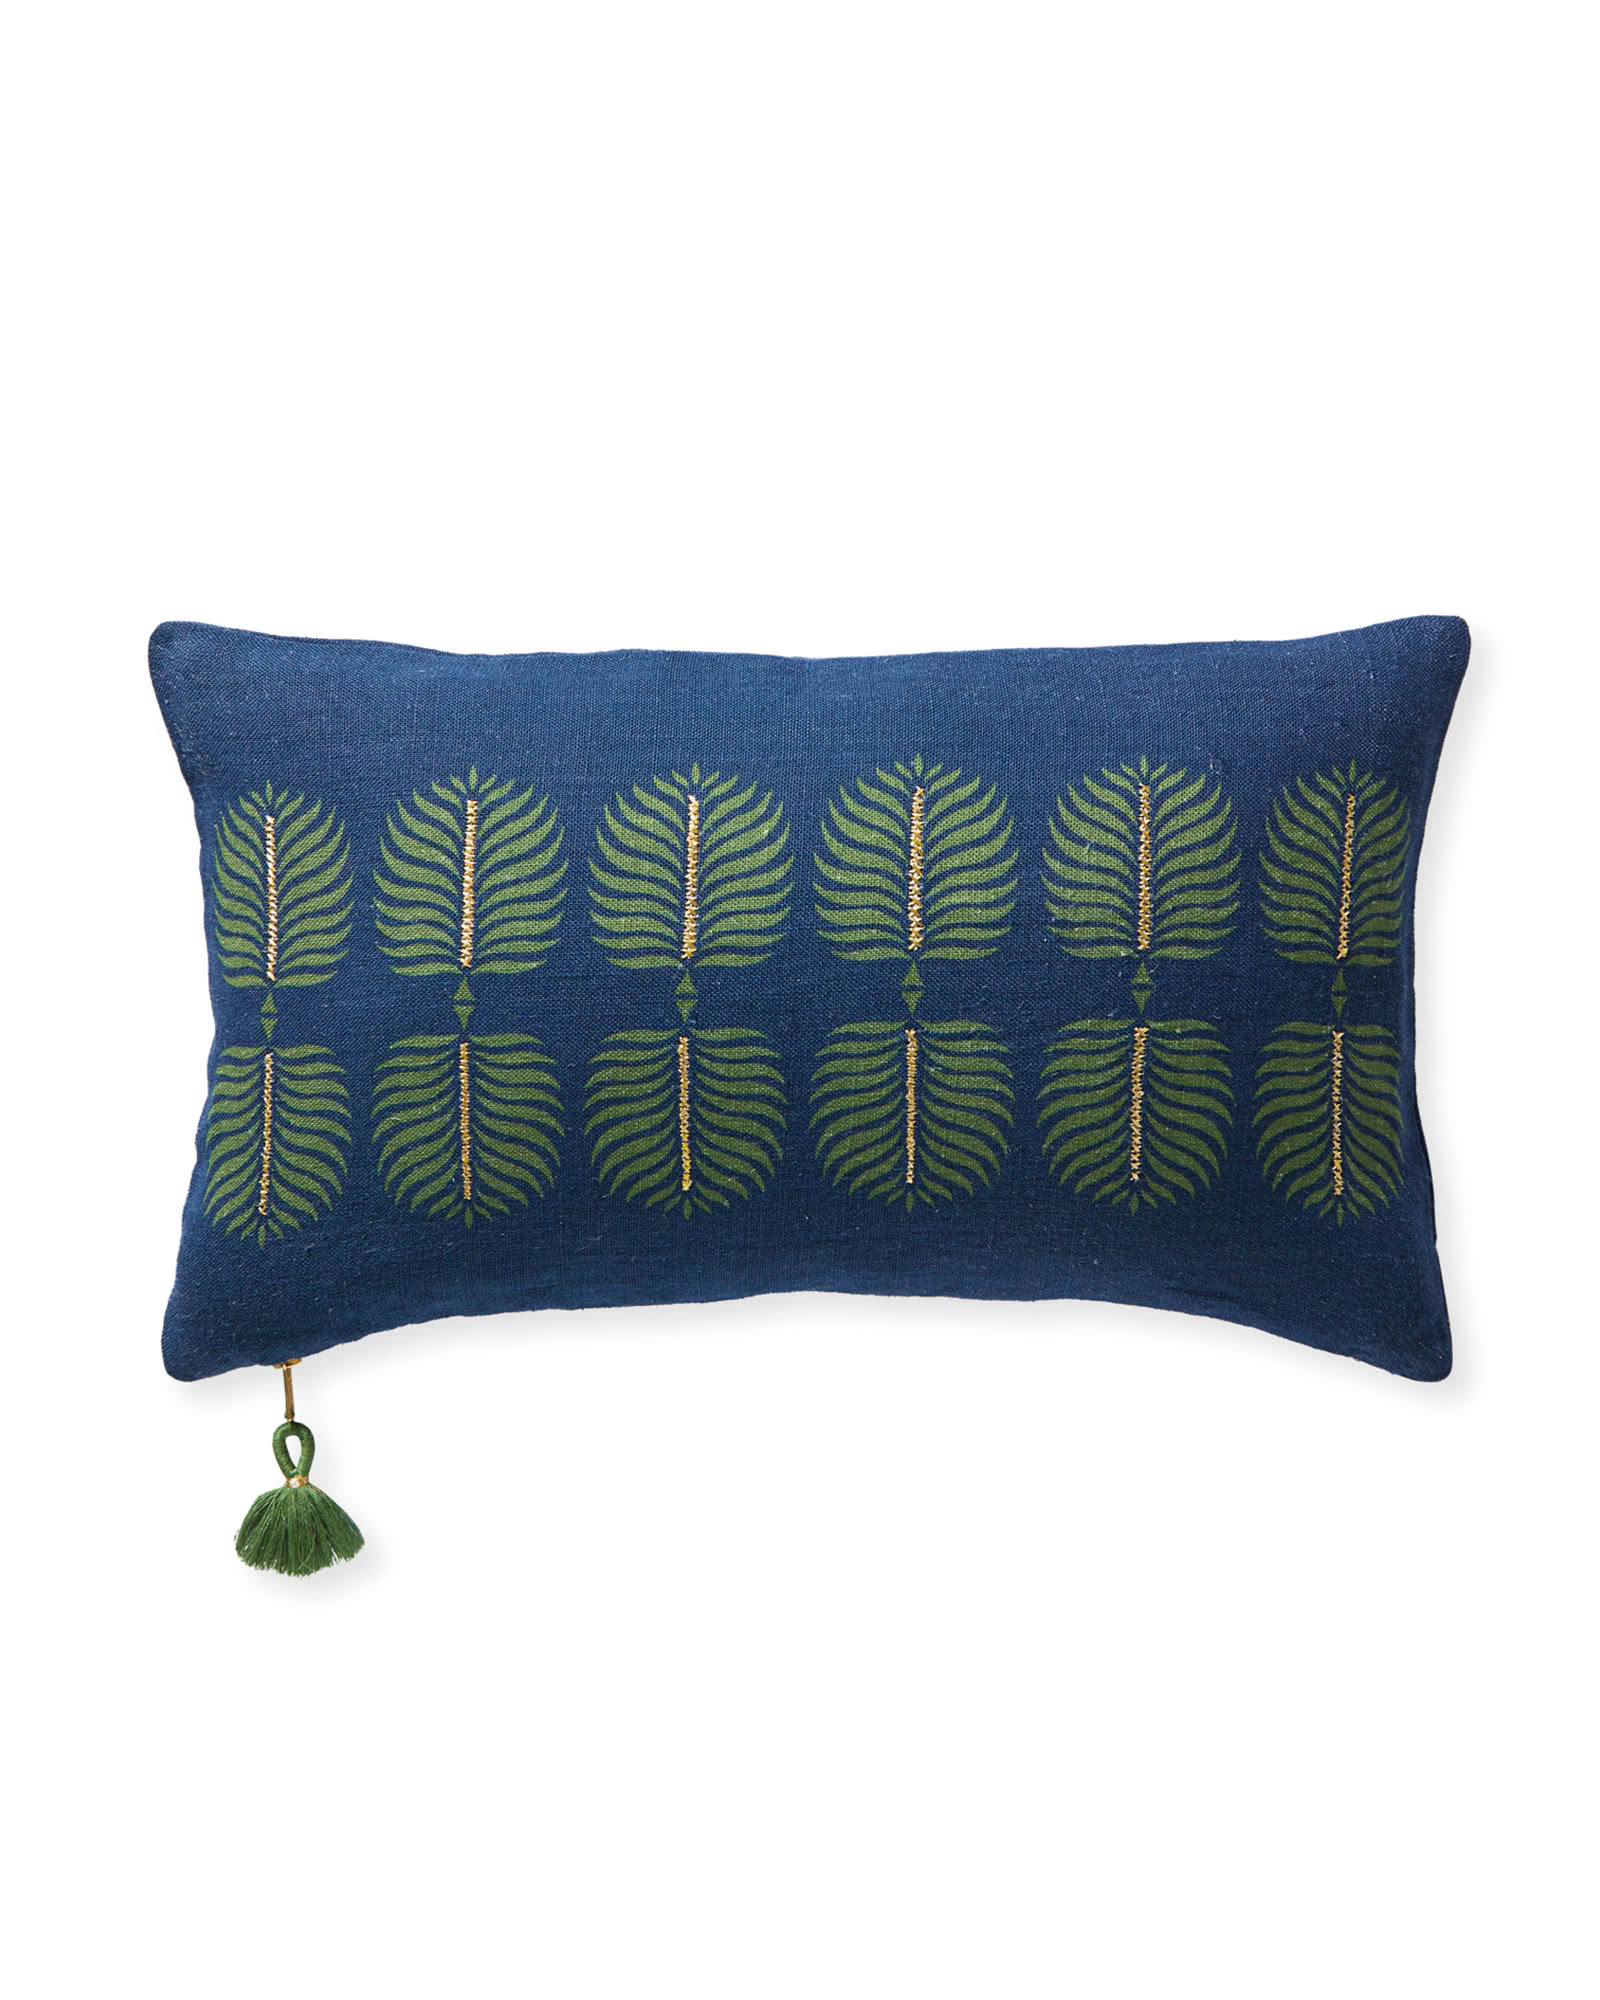 Granada Pillow Cover, Navy/Moss